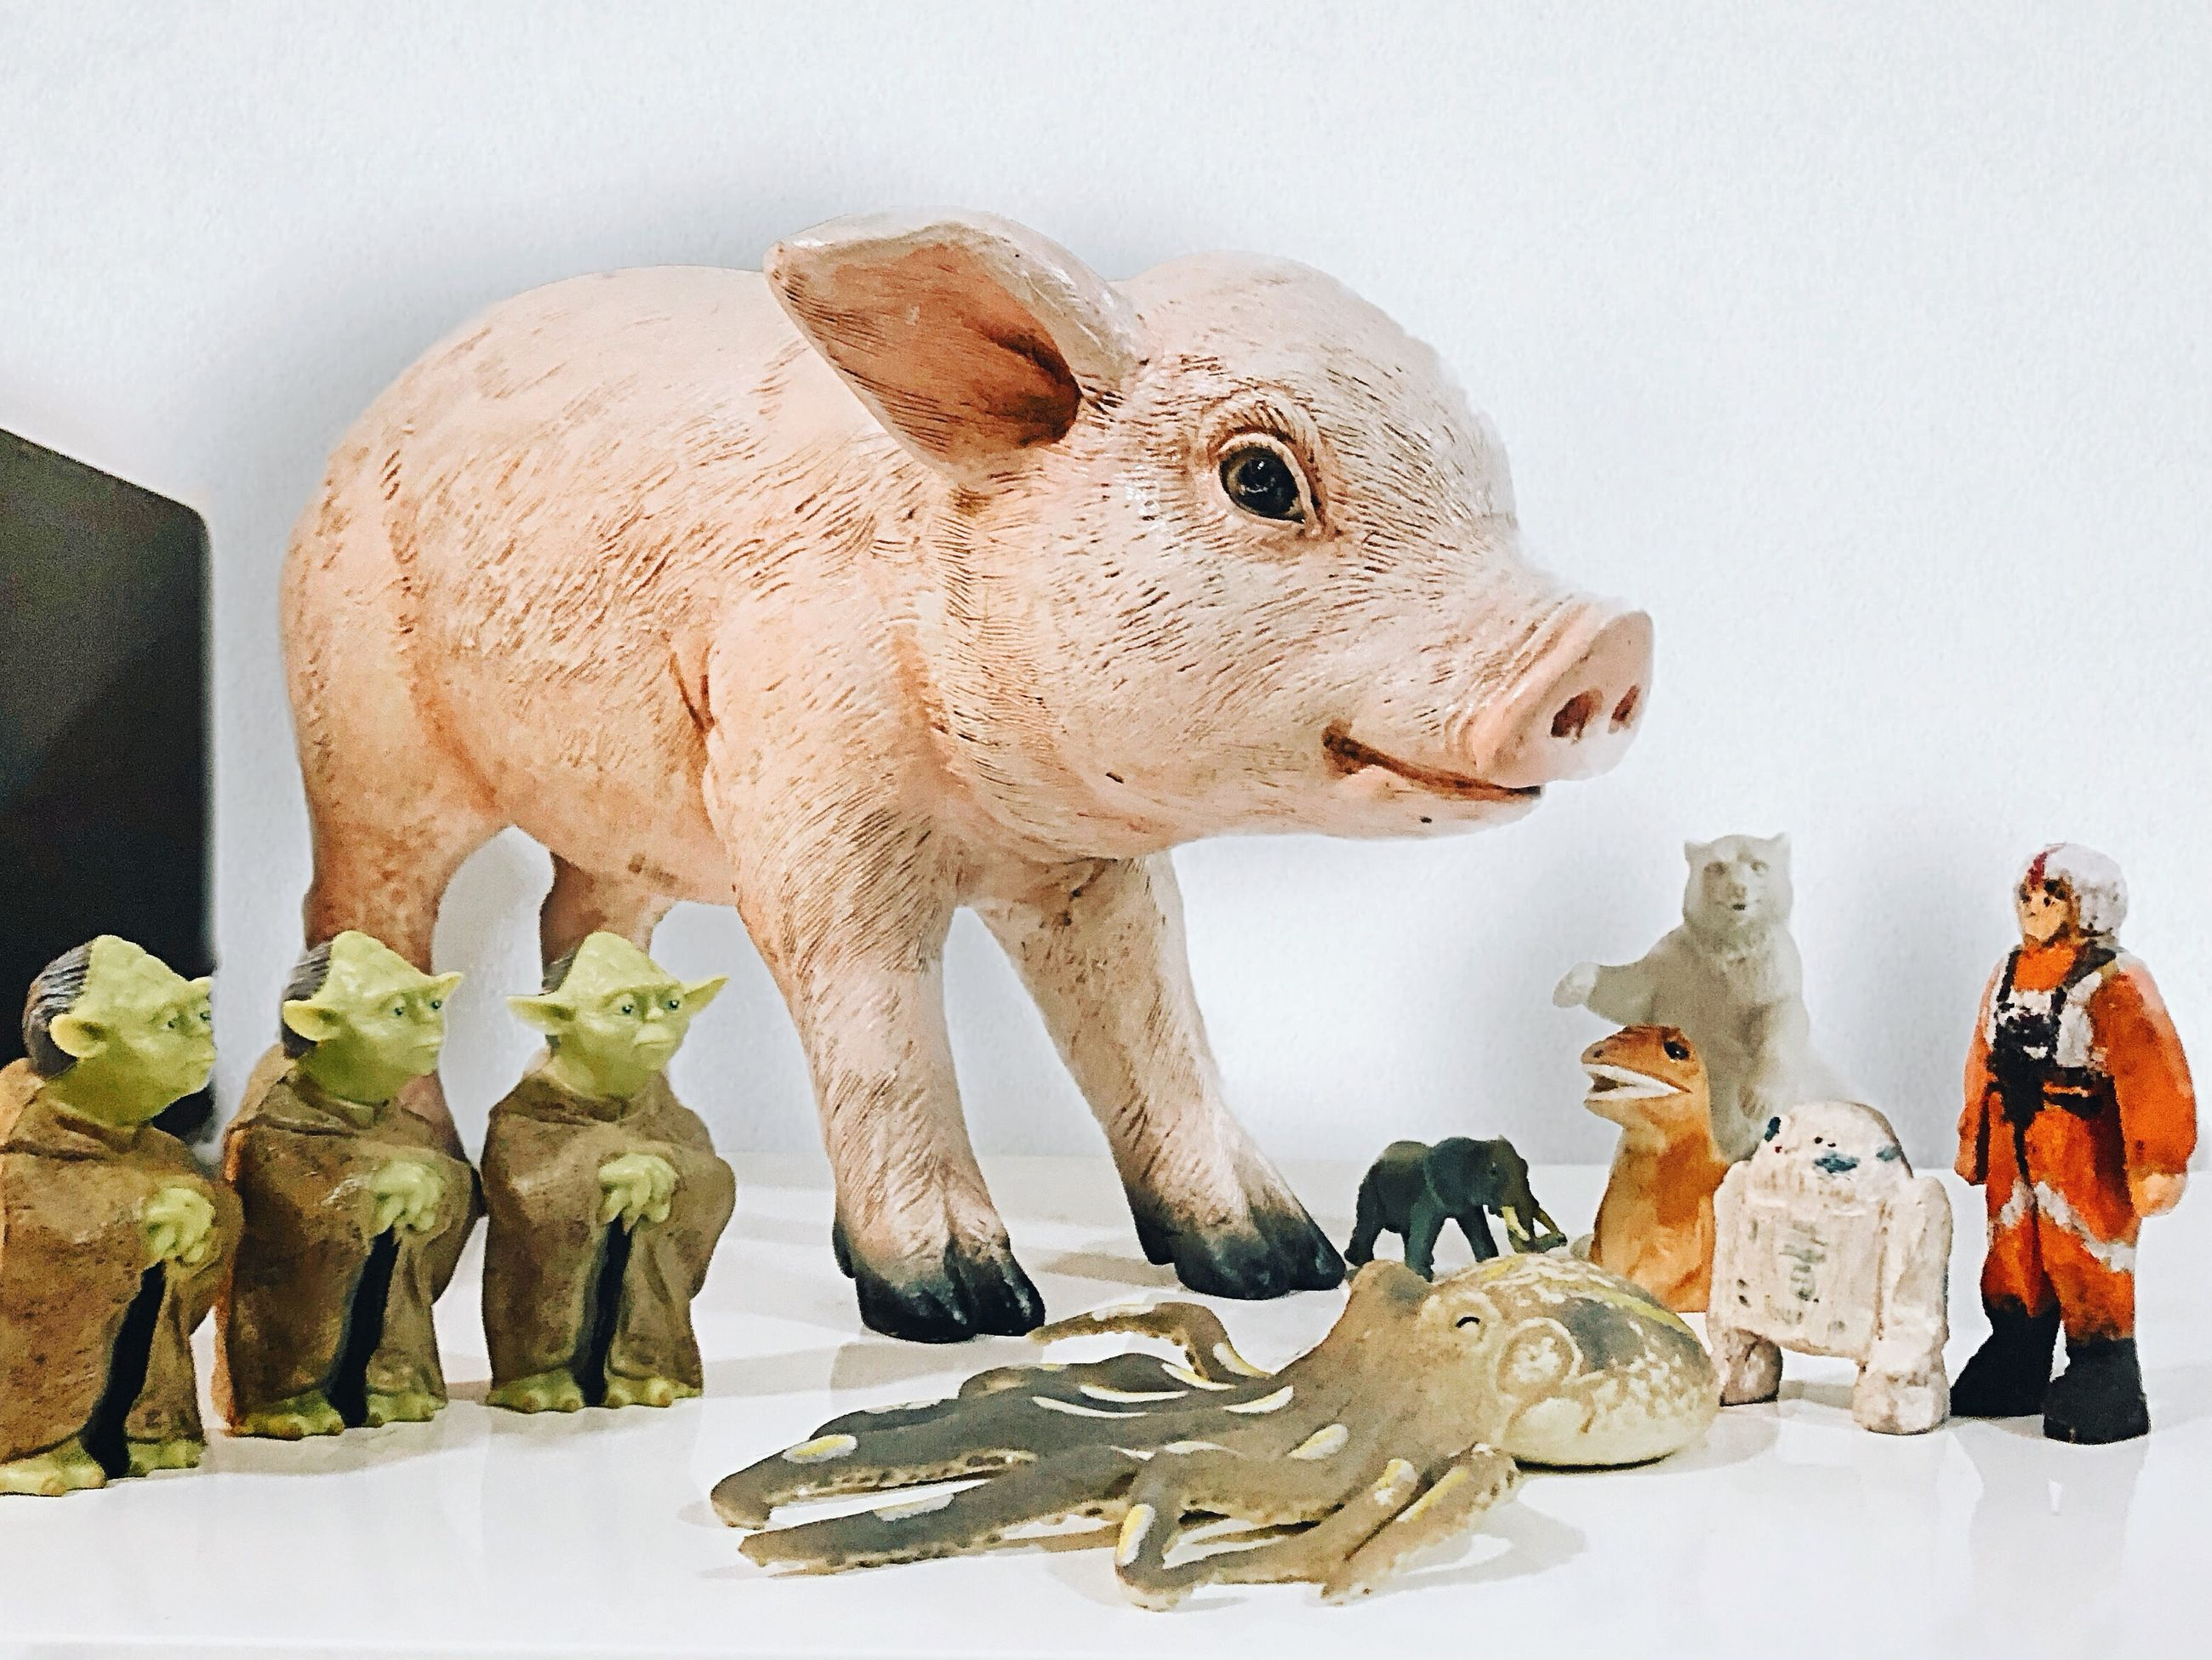 representation, indoors, mammal, art and craft, no people, sculpture, domestic animals, group of animals, livestock, human representation, white background, statue, male likeness, vertebrate, animal wildlife, studio shot, herbivorous